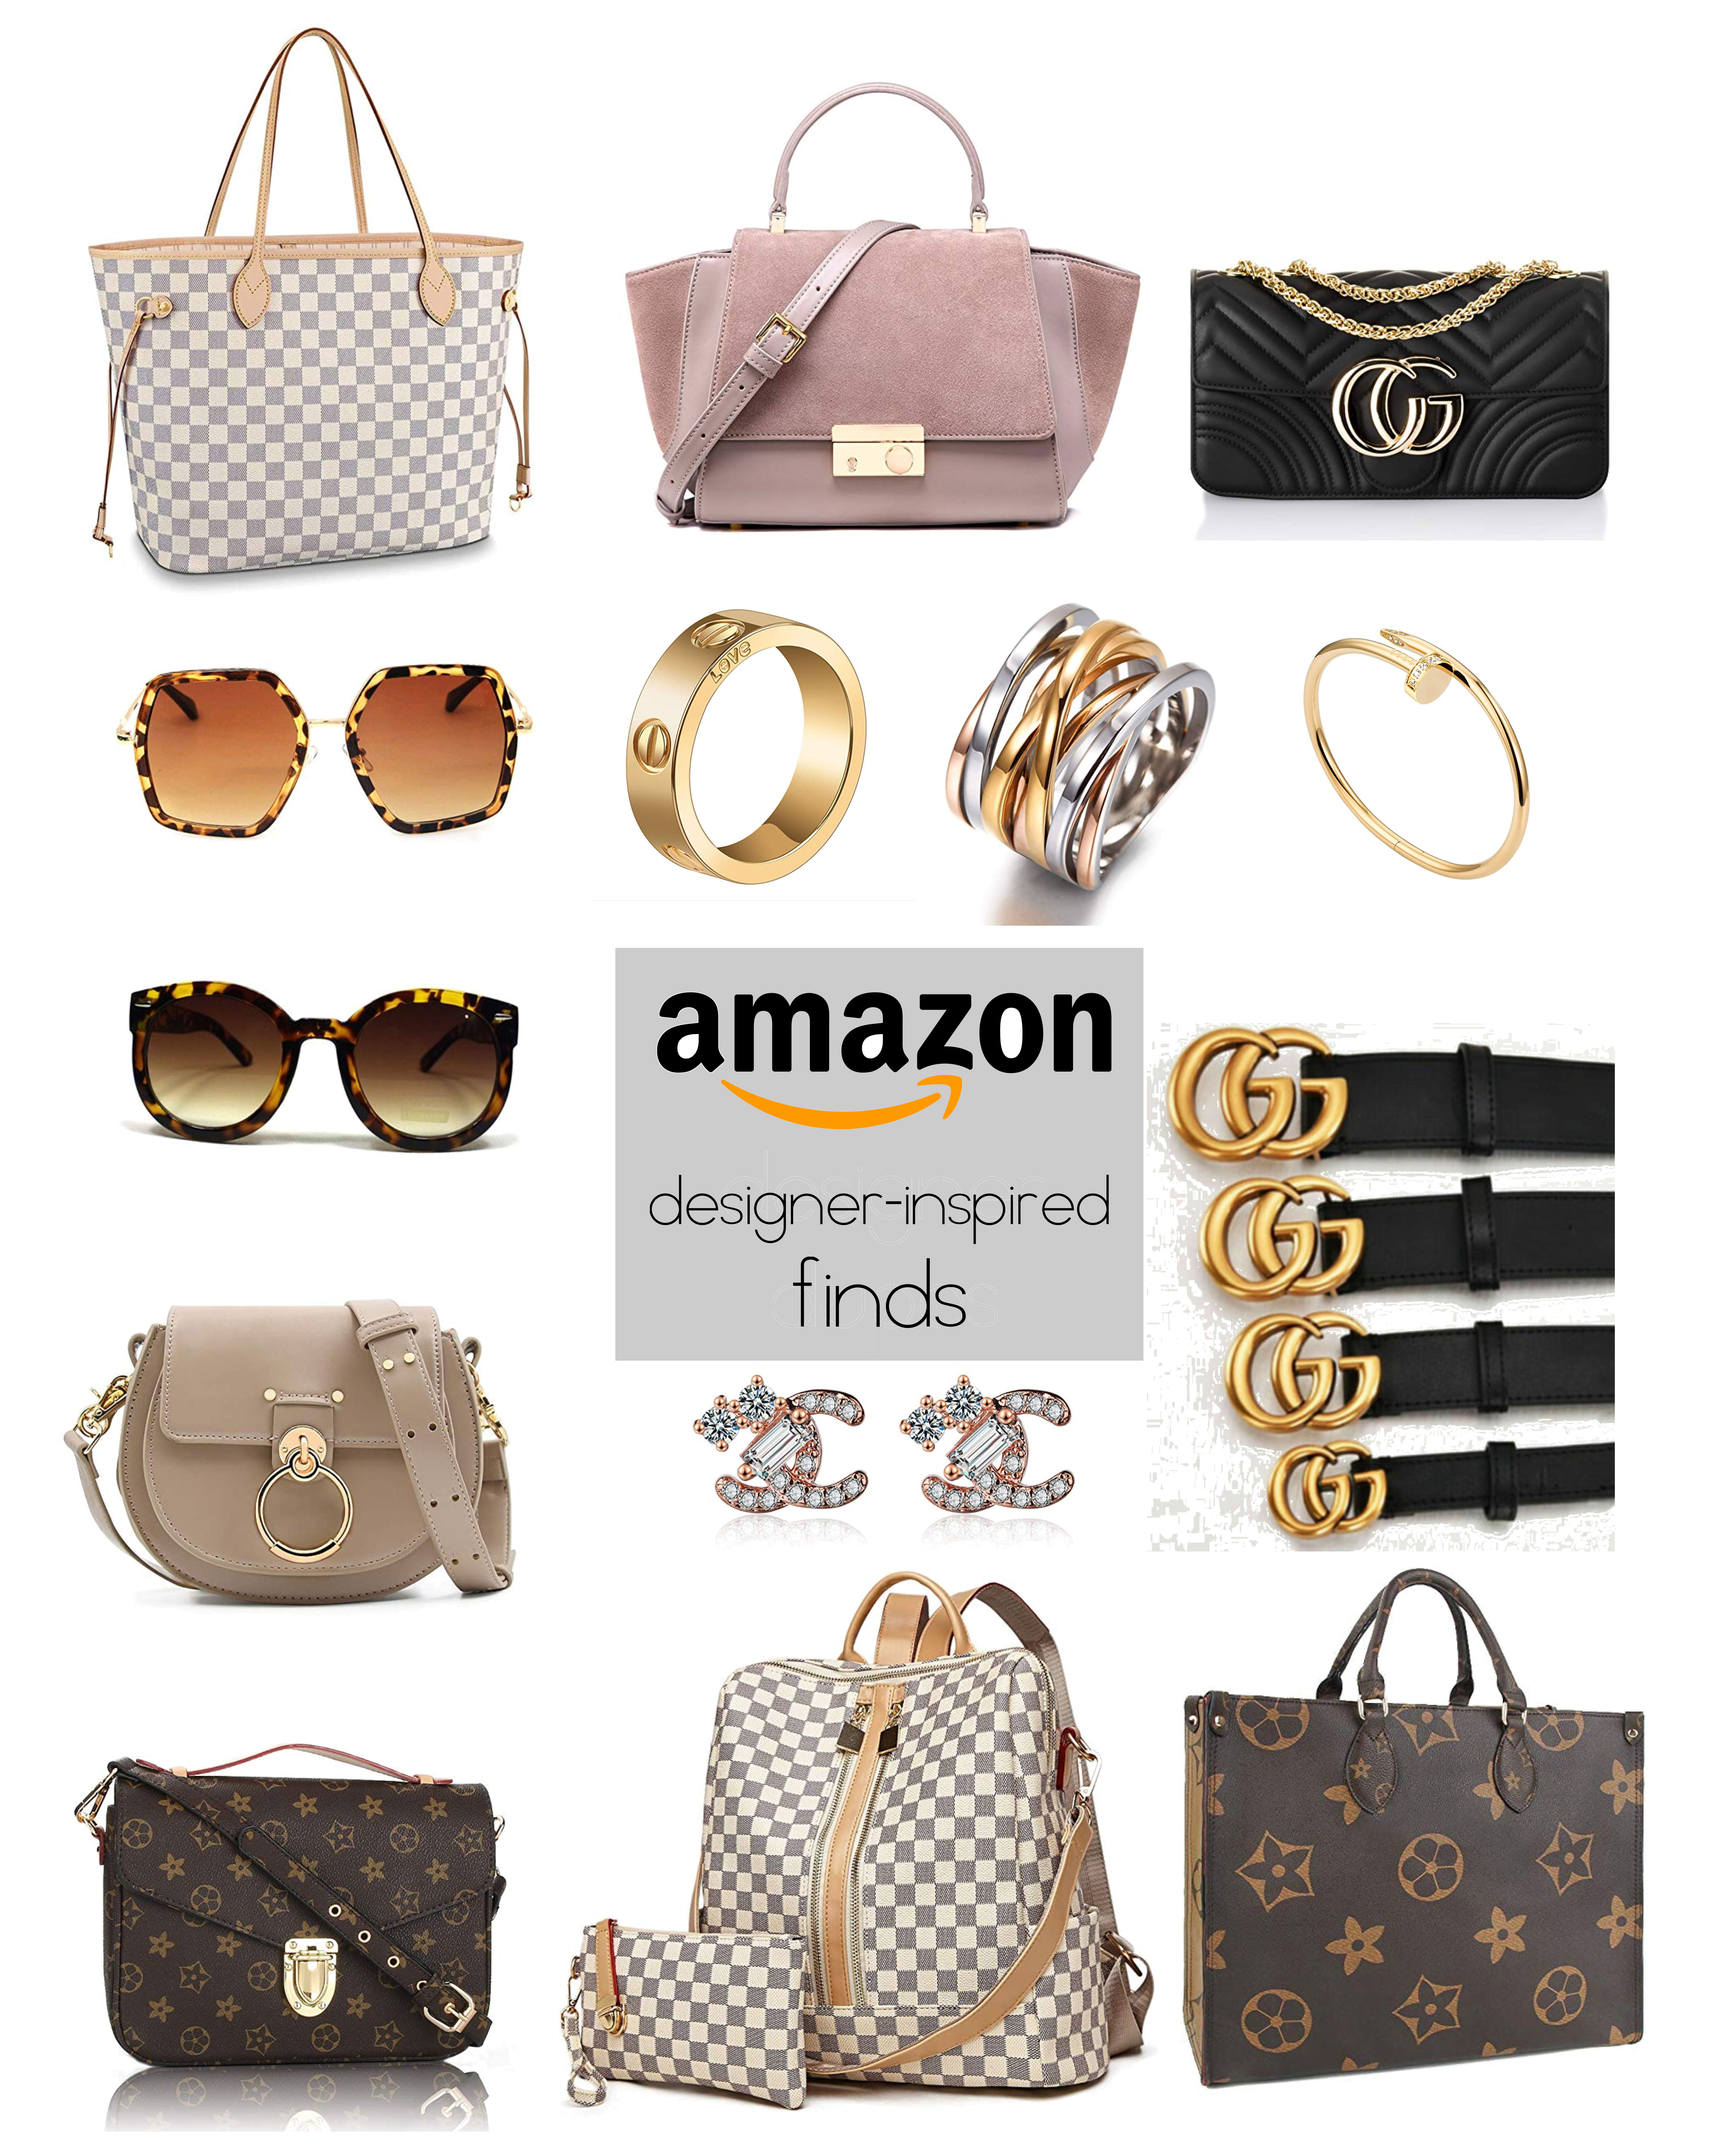 cute & little | dallas petite fashion blog | amazon designer-inspired finds